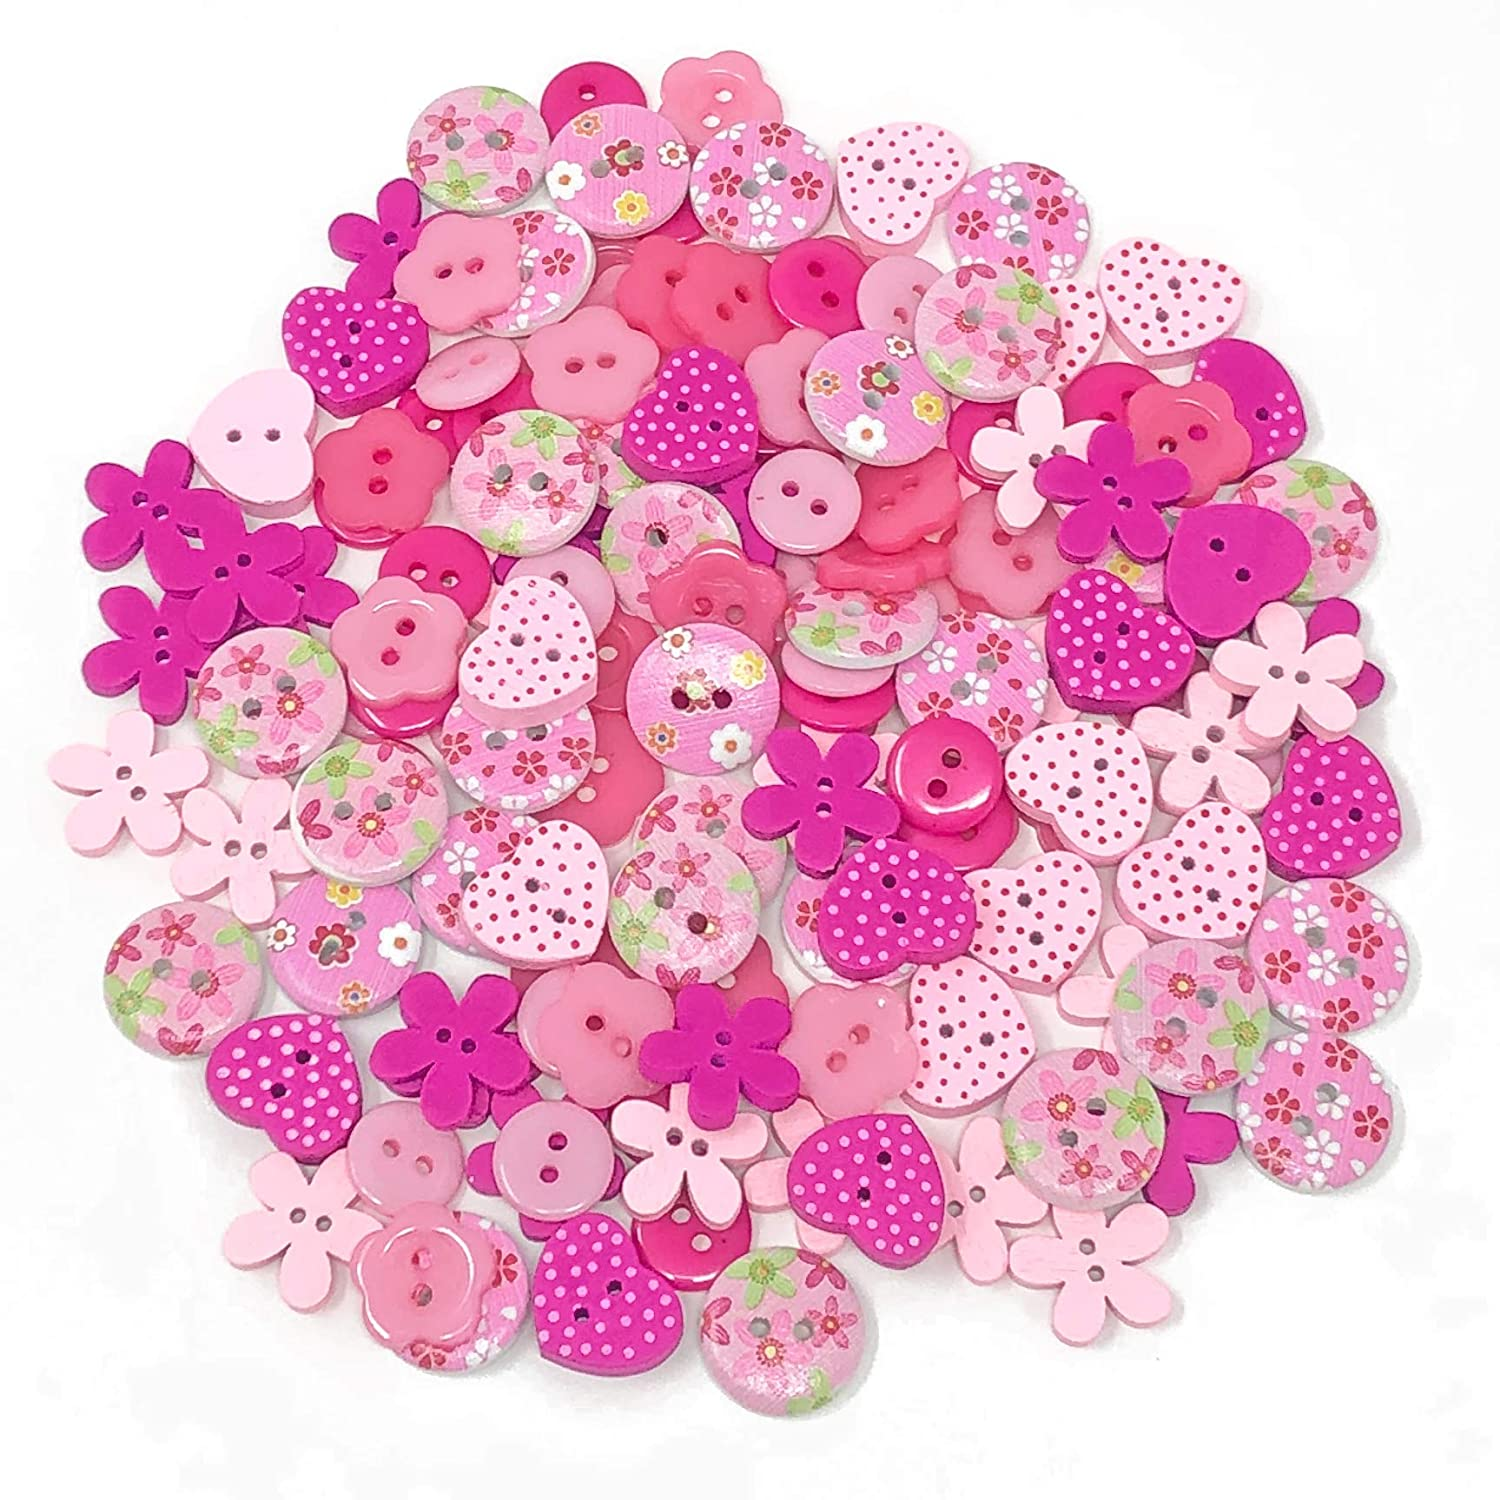 150pcs Pink Mix Wood Acrylic & Resin Buttons For Cardmaking Embellishments Wedding Touches